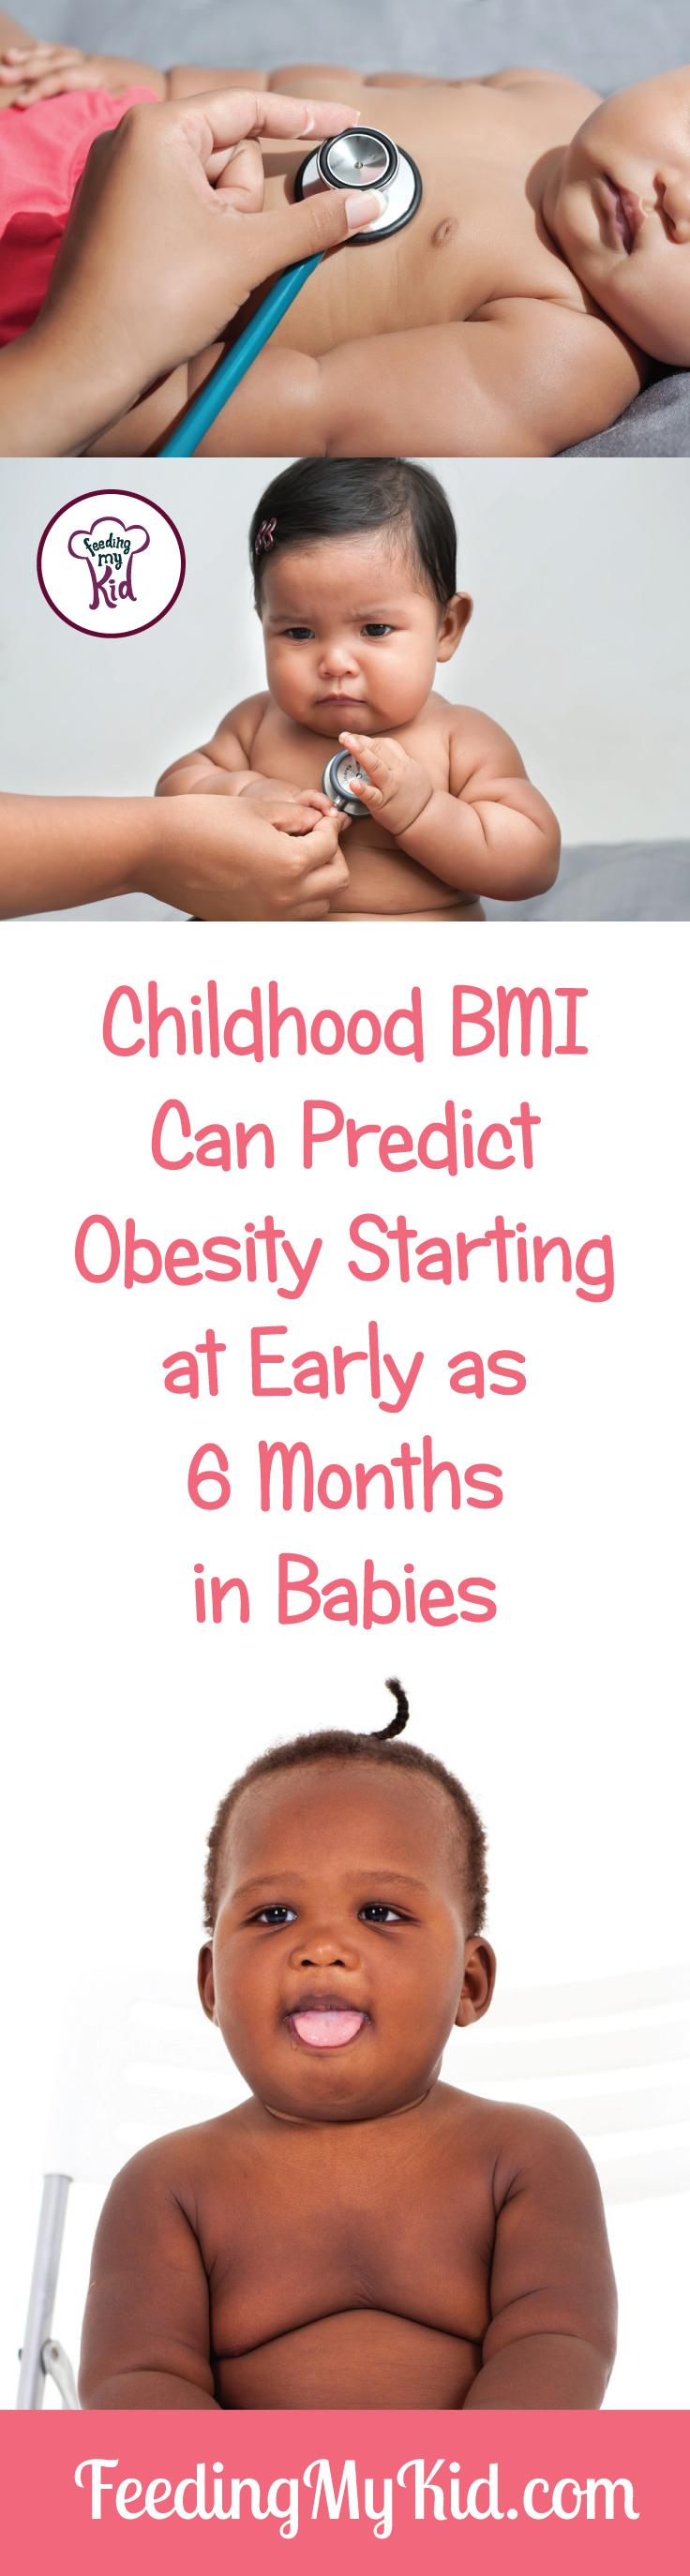 Overweight Baby Baby Bmi At 6 Months Can Predict Obesity